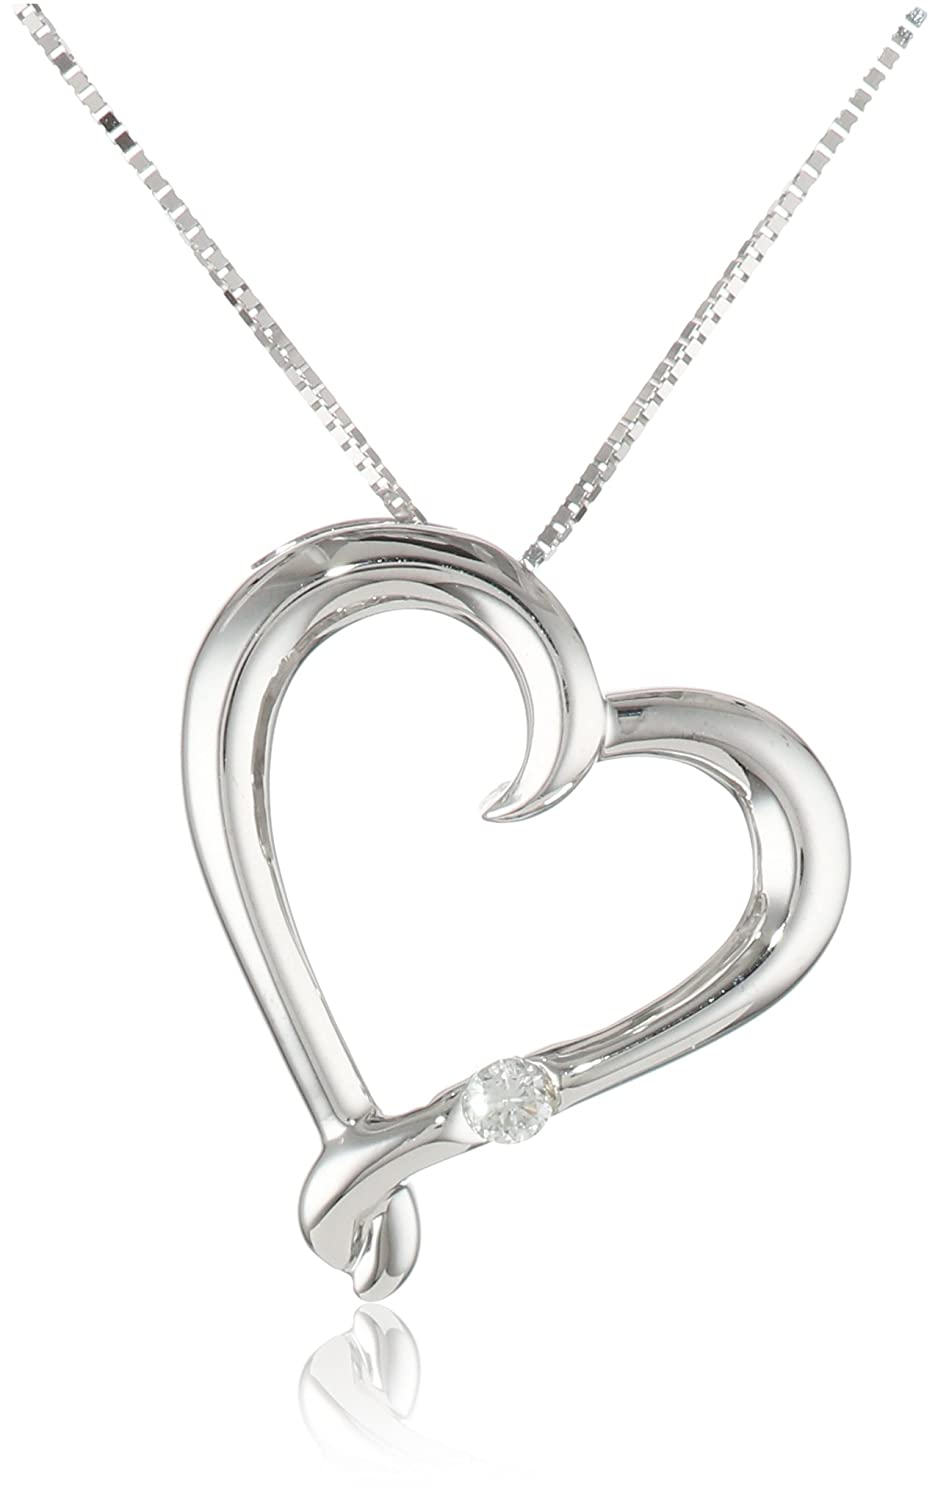 10k White Gold Heart with Diamond Pendant Necklace (0.03 cttw I-J Color, I2-I3 Clarity), 18""